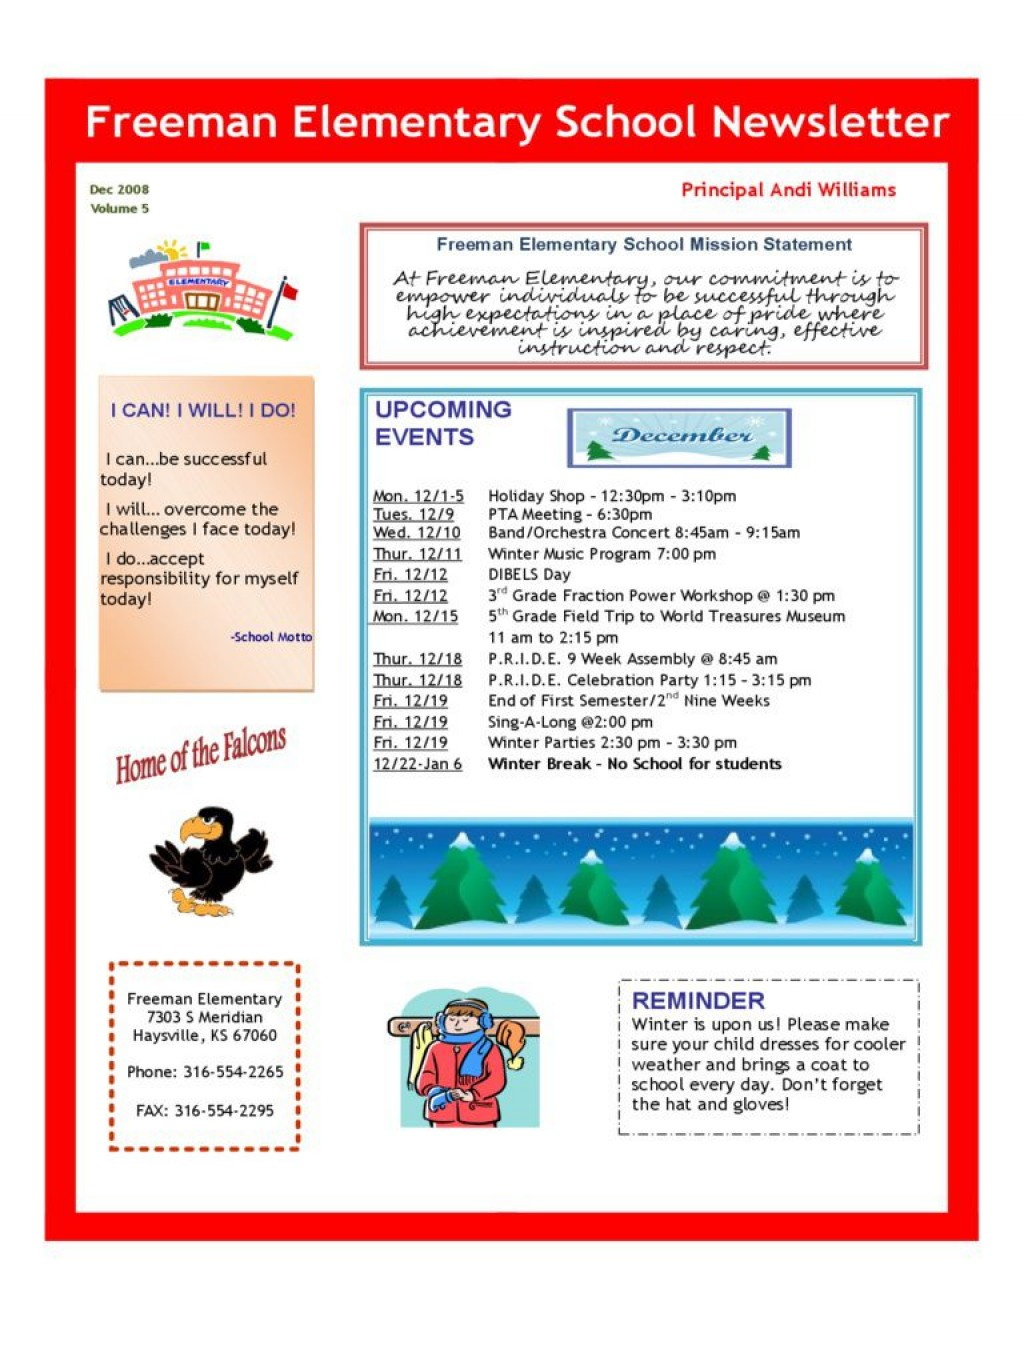 006 Awesome Elementary School Newsletter Template High Definition  Clas Teacher Free CounselorLarge